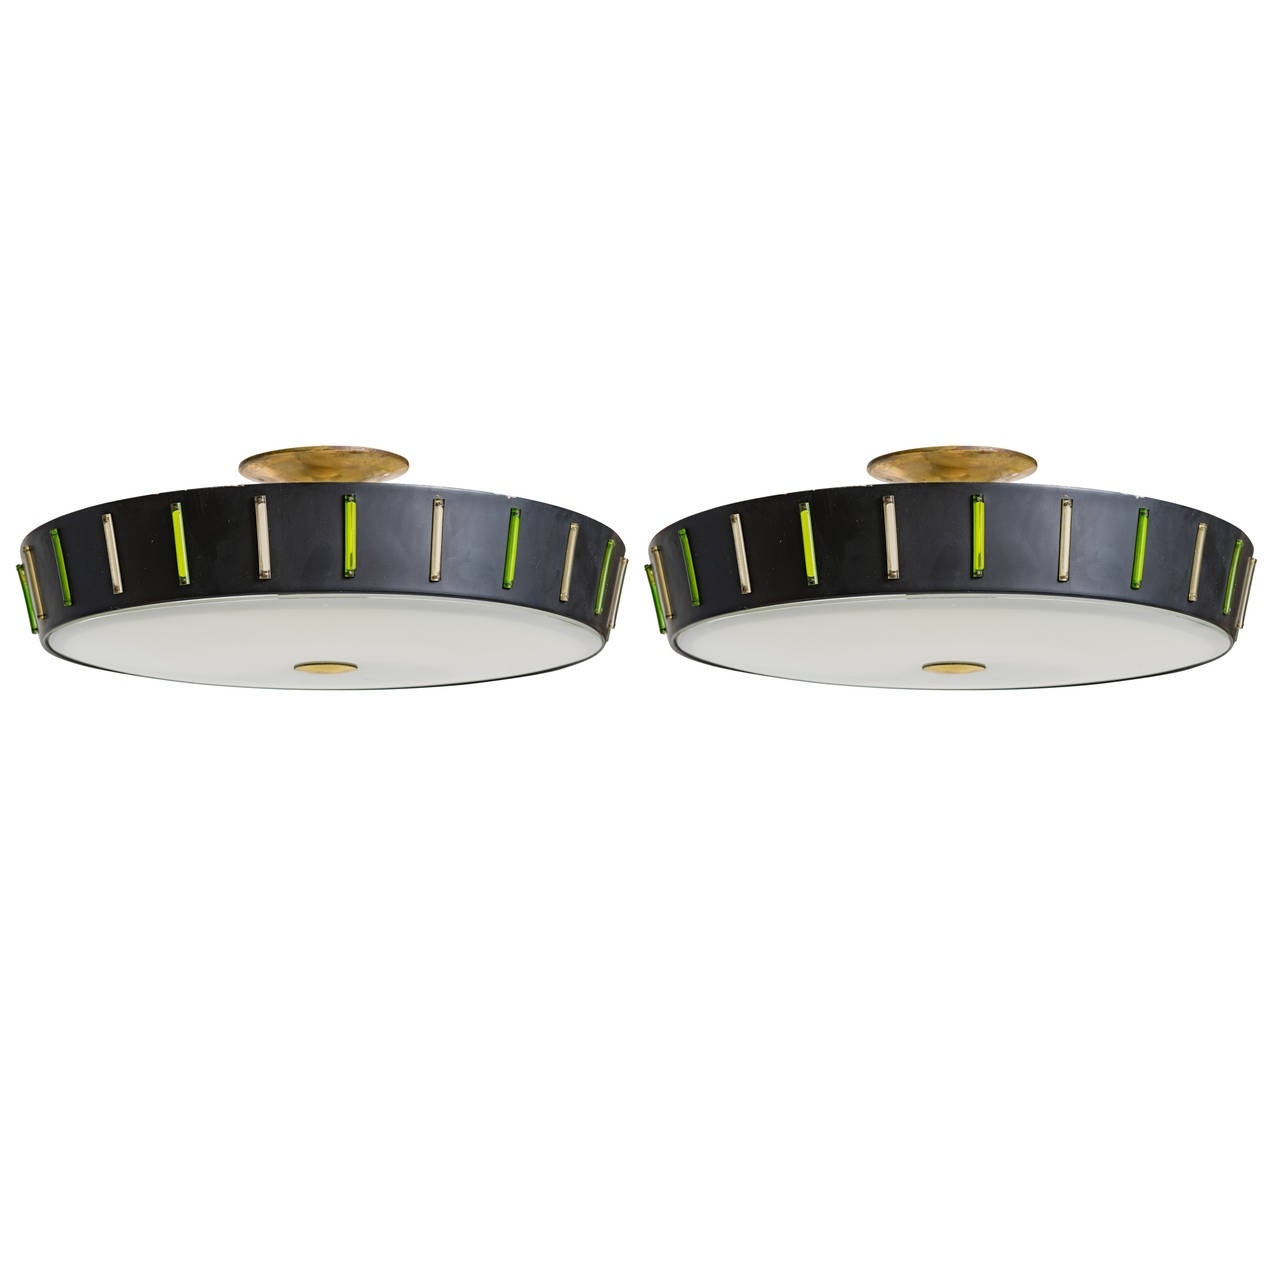 Ceiling Mounted Light Fixtures Pair of Mid Century Flush Mount Light Fixtures at 1stdibs